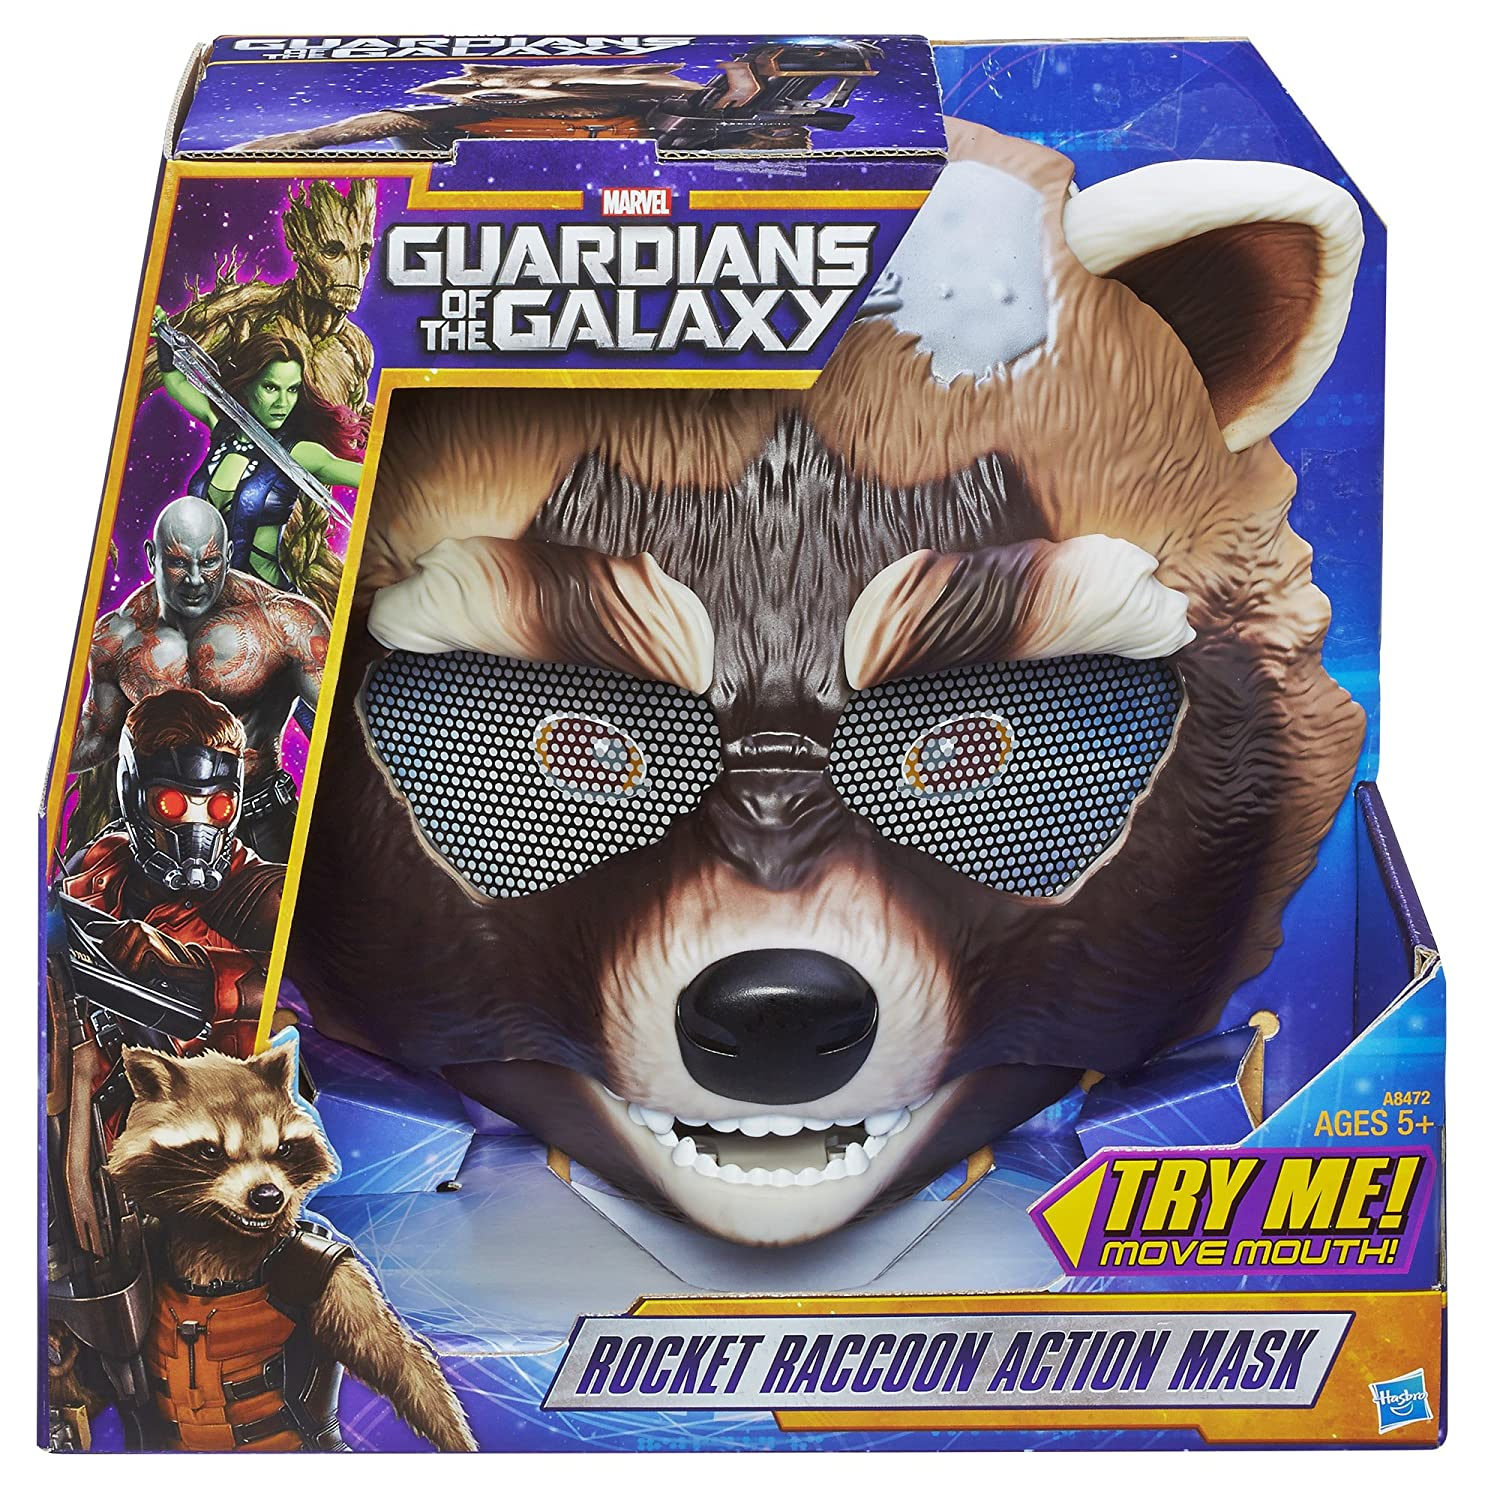 Amazon.com: Marvel Guardians of The Galaxy Rocket Raccoon Action ...